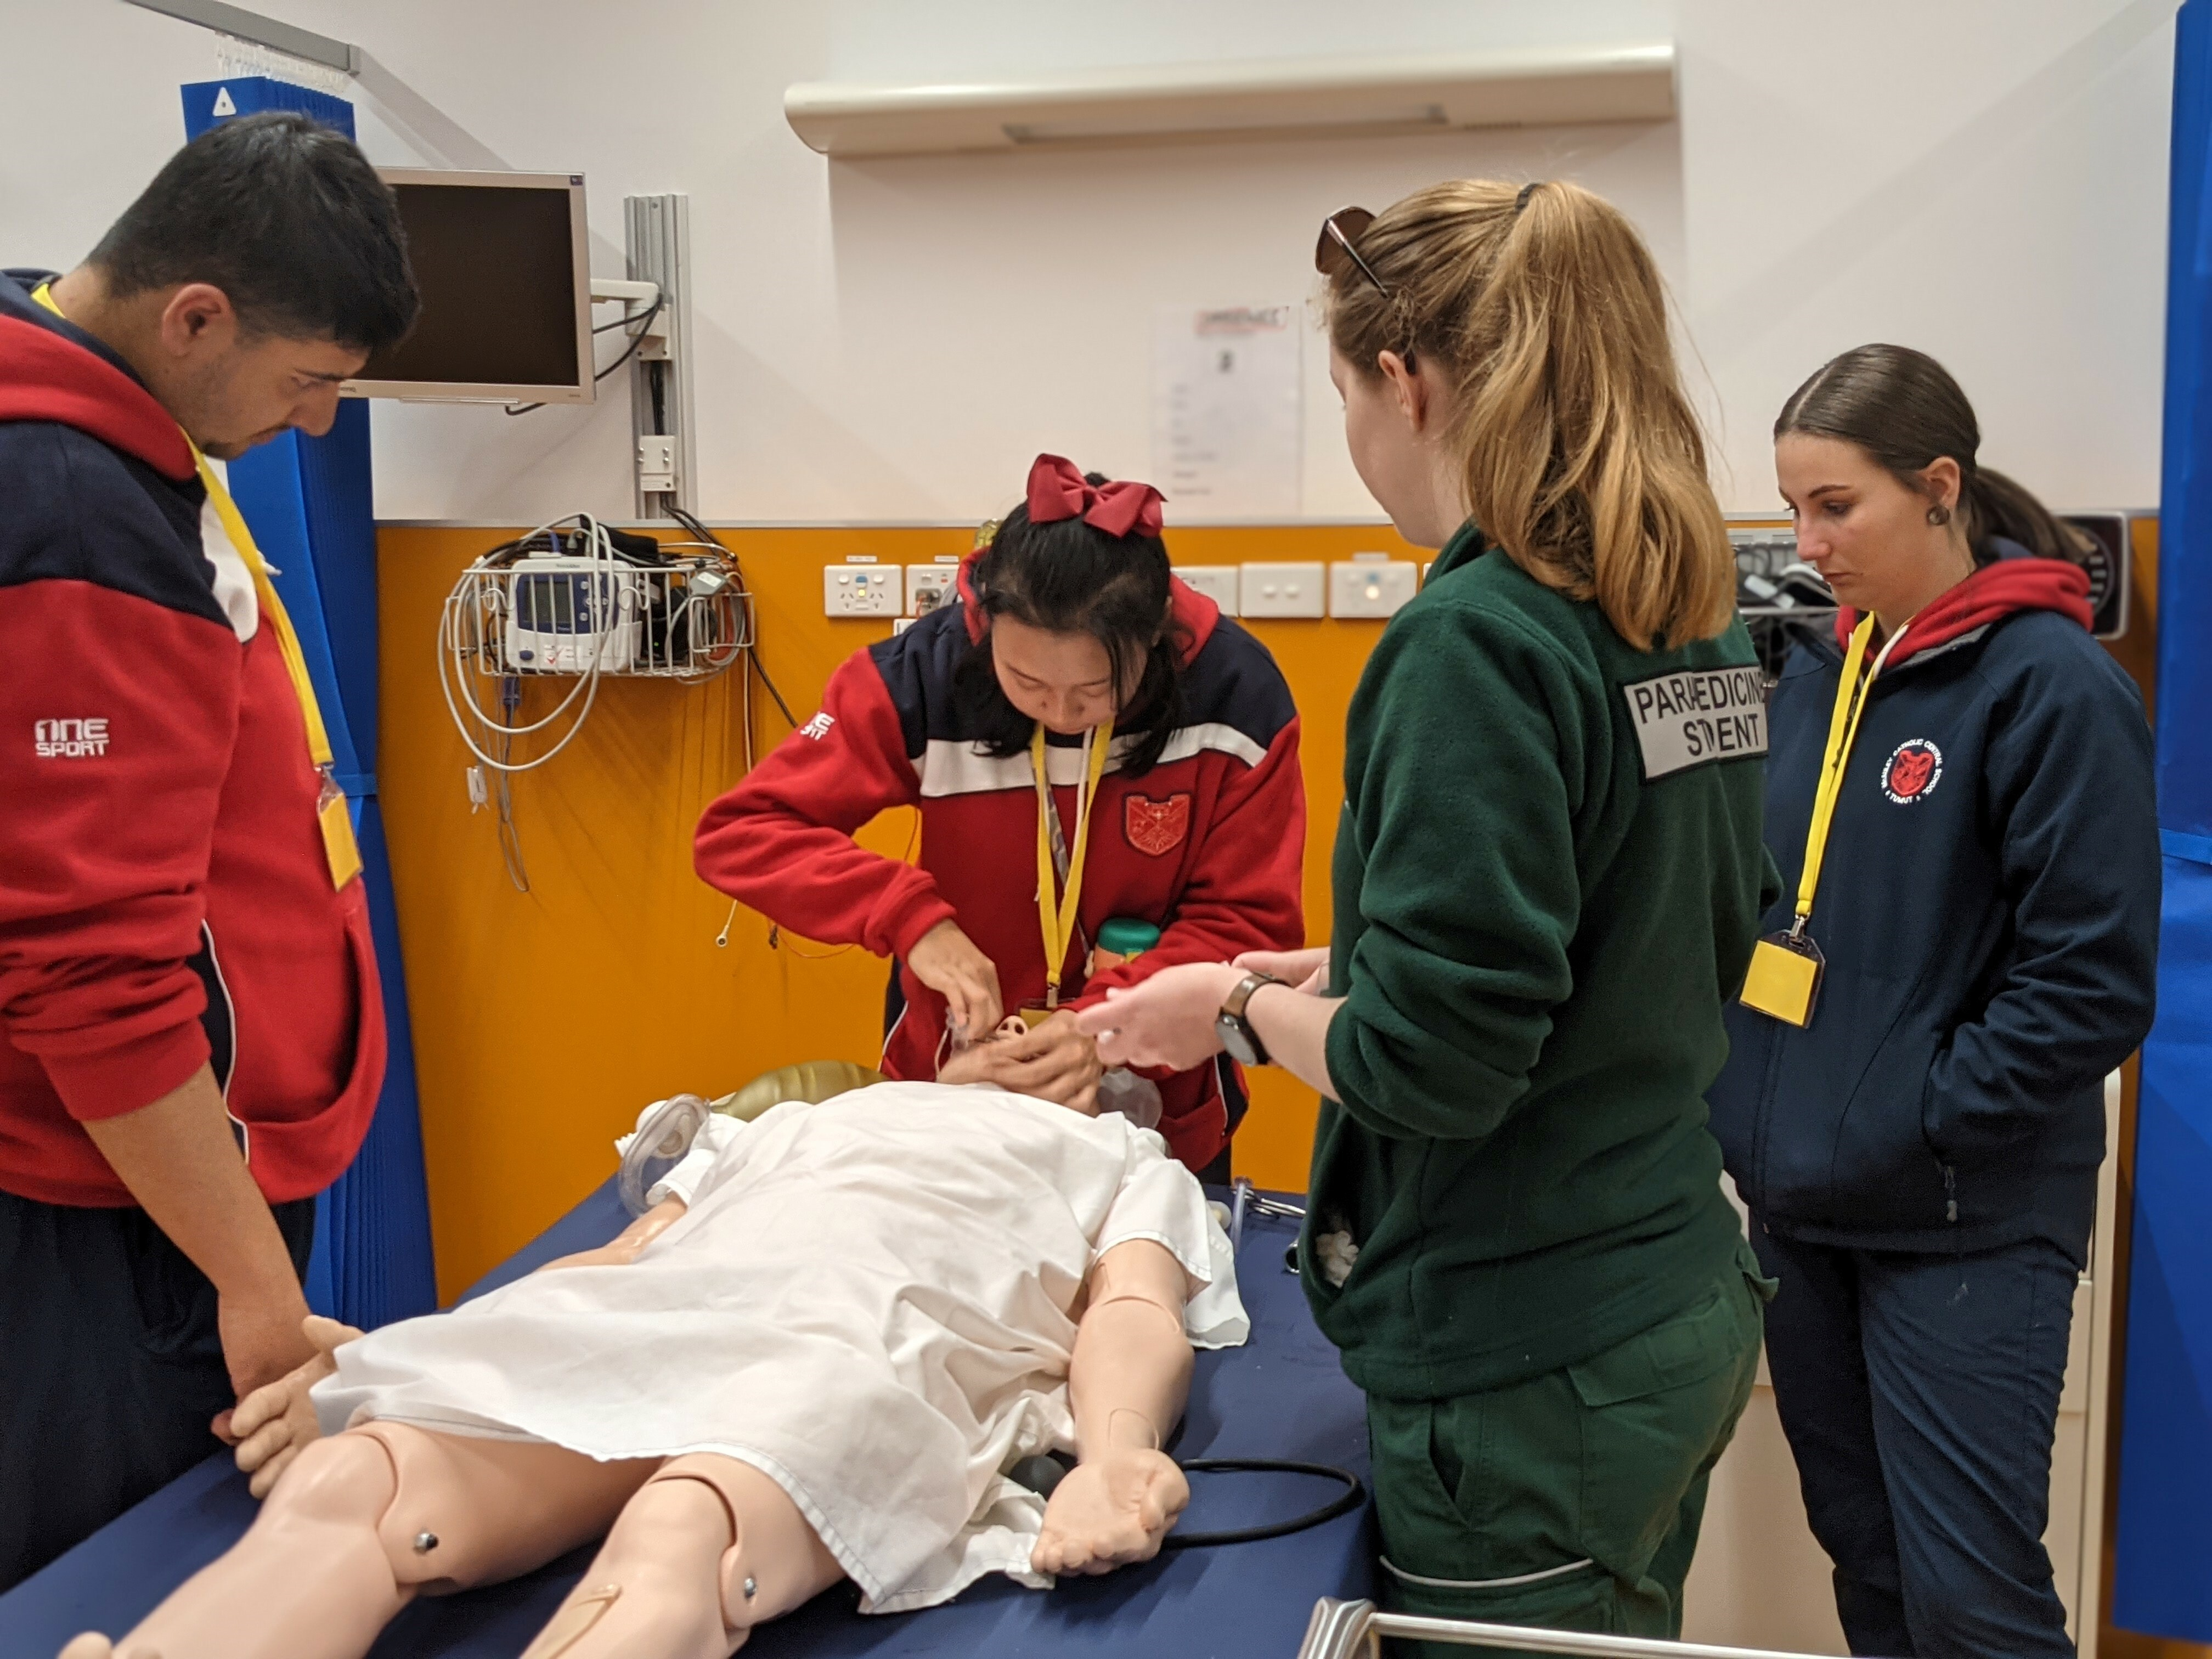 McAuley Yr 10 students benefited from a great hands-on visit to the Aust Catholic University.